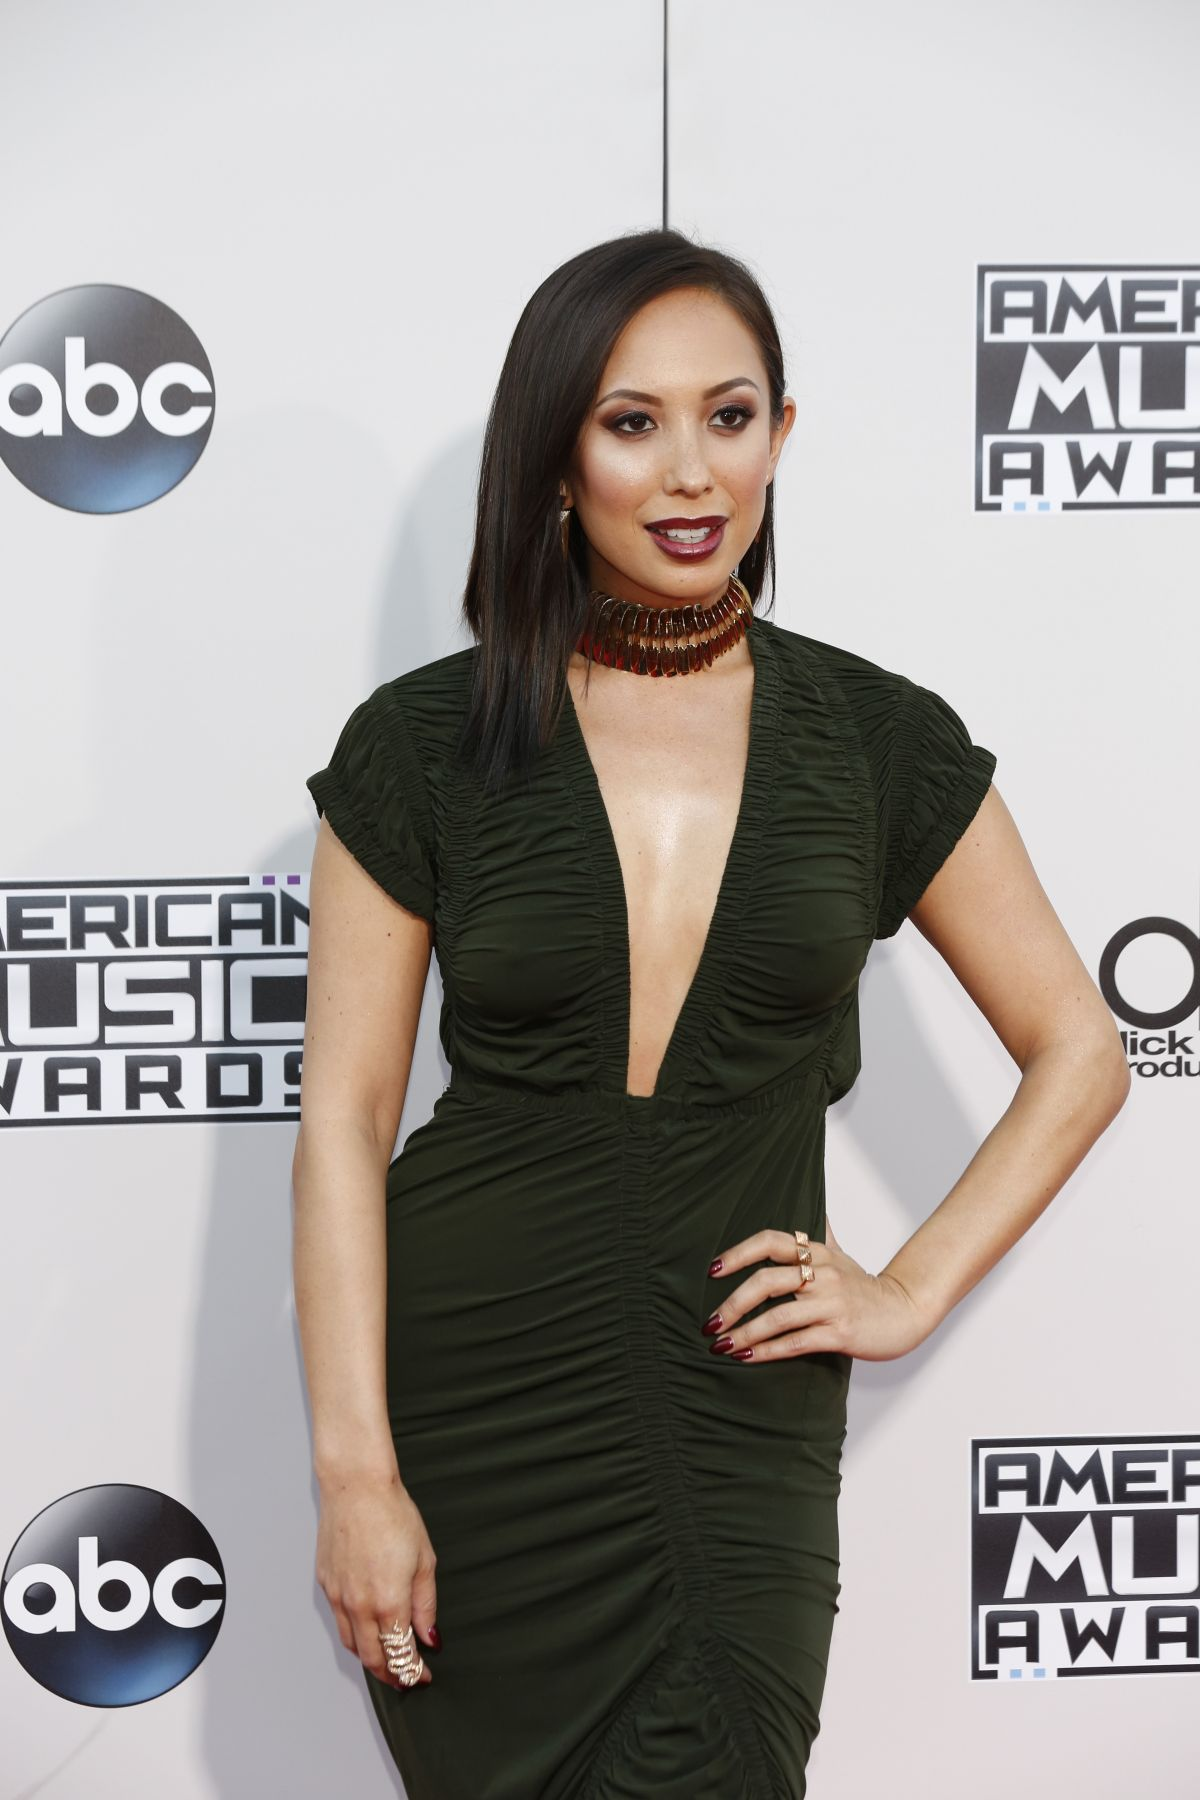 CHERYL BURKE at 2015 American Music Awards in Los Angeles 11/22/2015